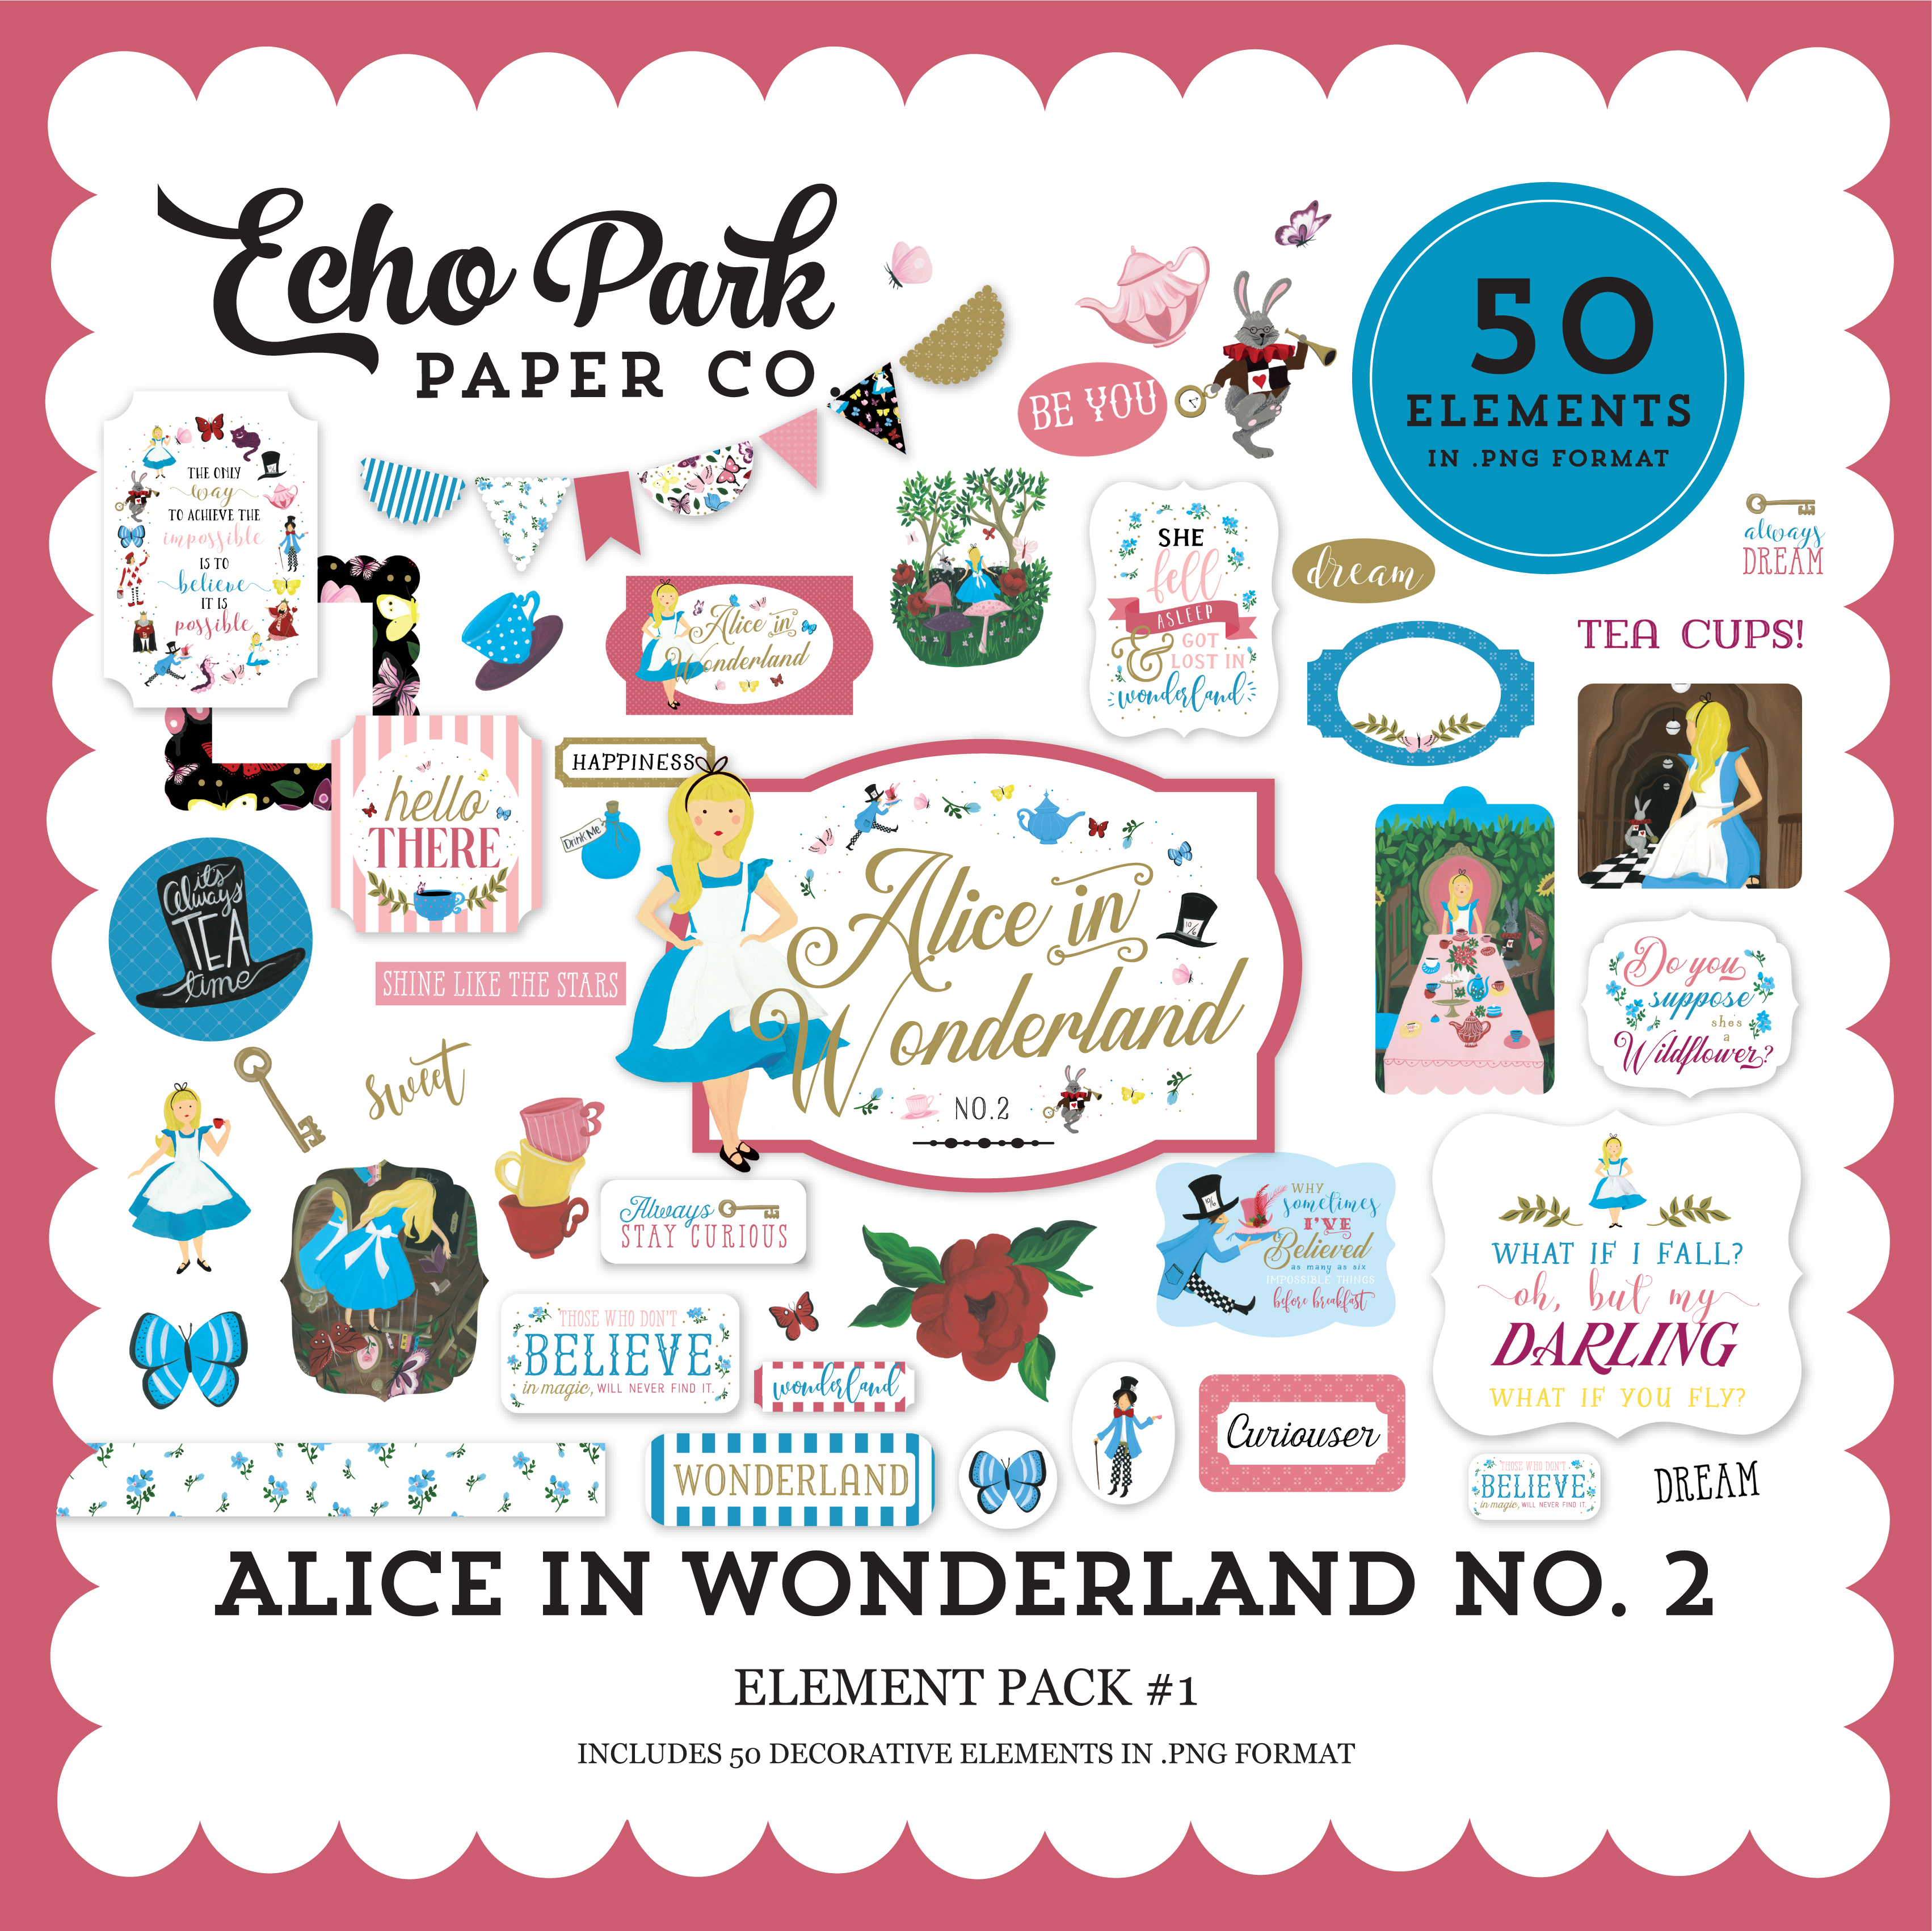 Alice in Wonderland No. 2 Element Pack #1